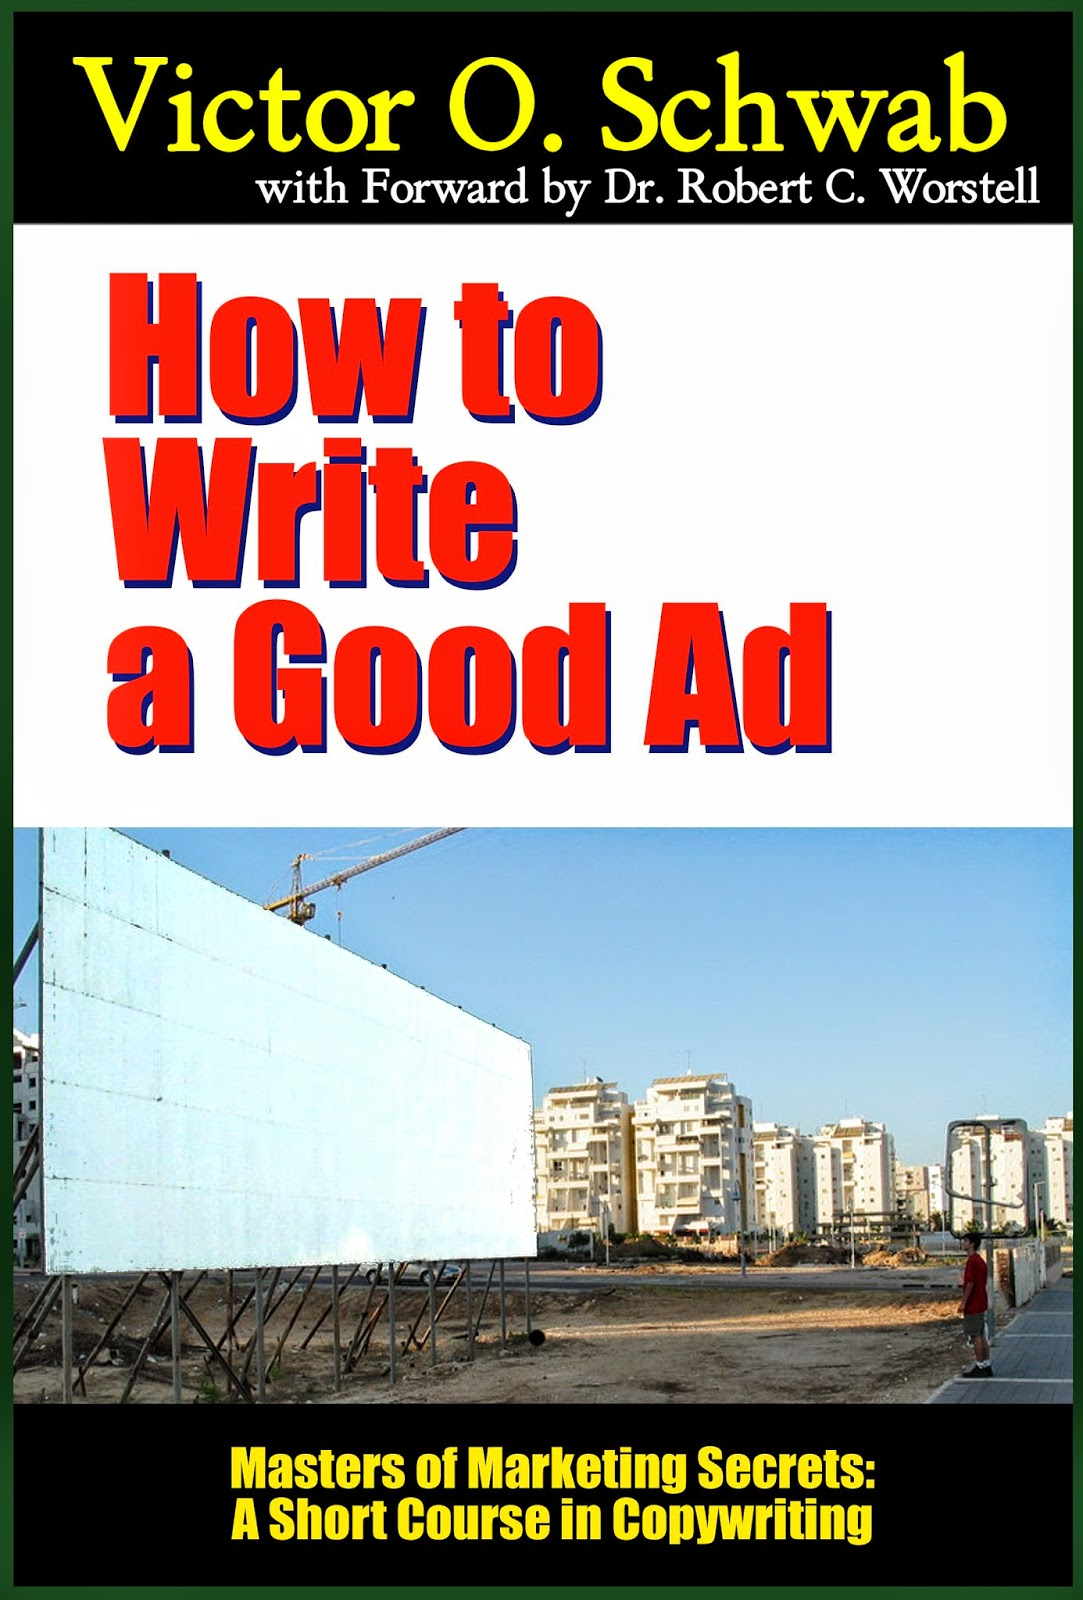 Victor Schwab's How to Write a Good Ad is now available in book and paperback.